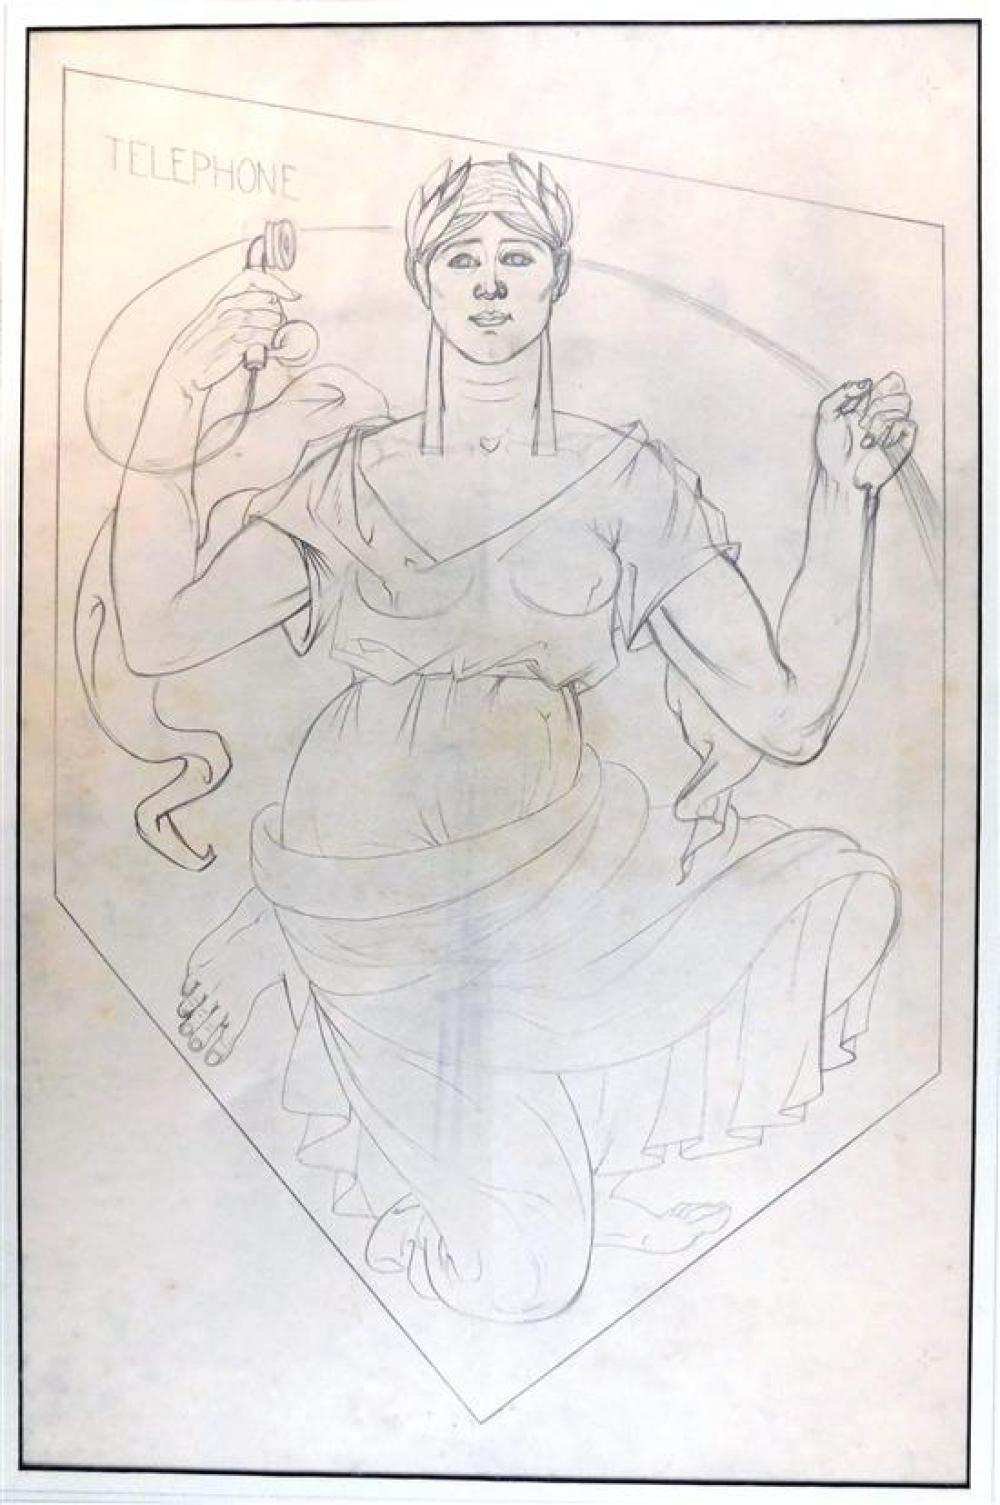 Eugene Savage (American, 1883-1978), three allegorical pencil drawings, likely preparatory drawings for mural or other project, esta...